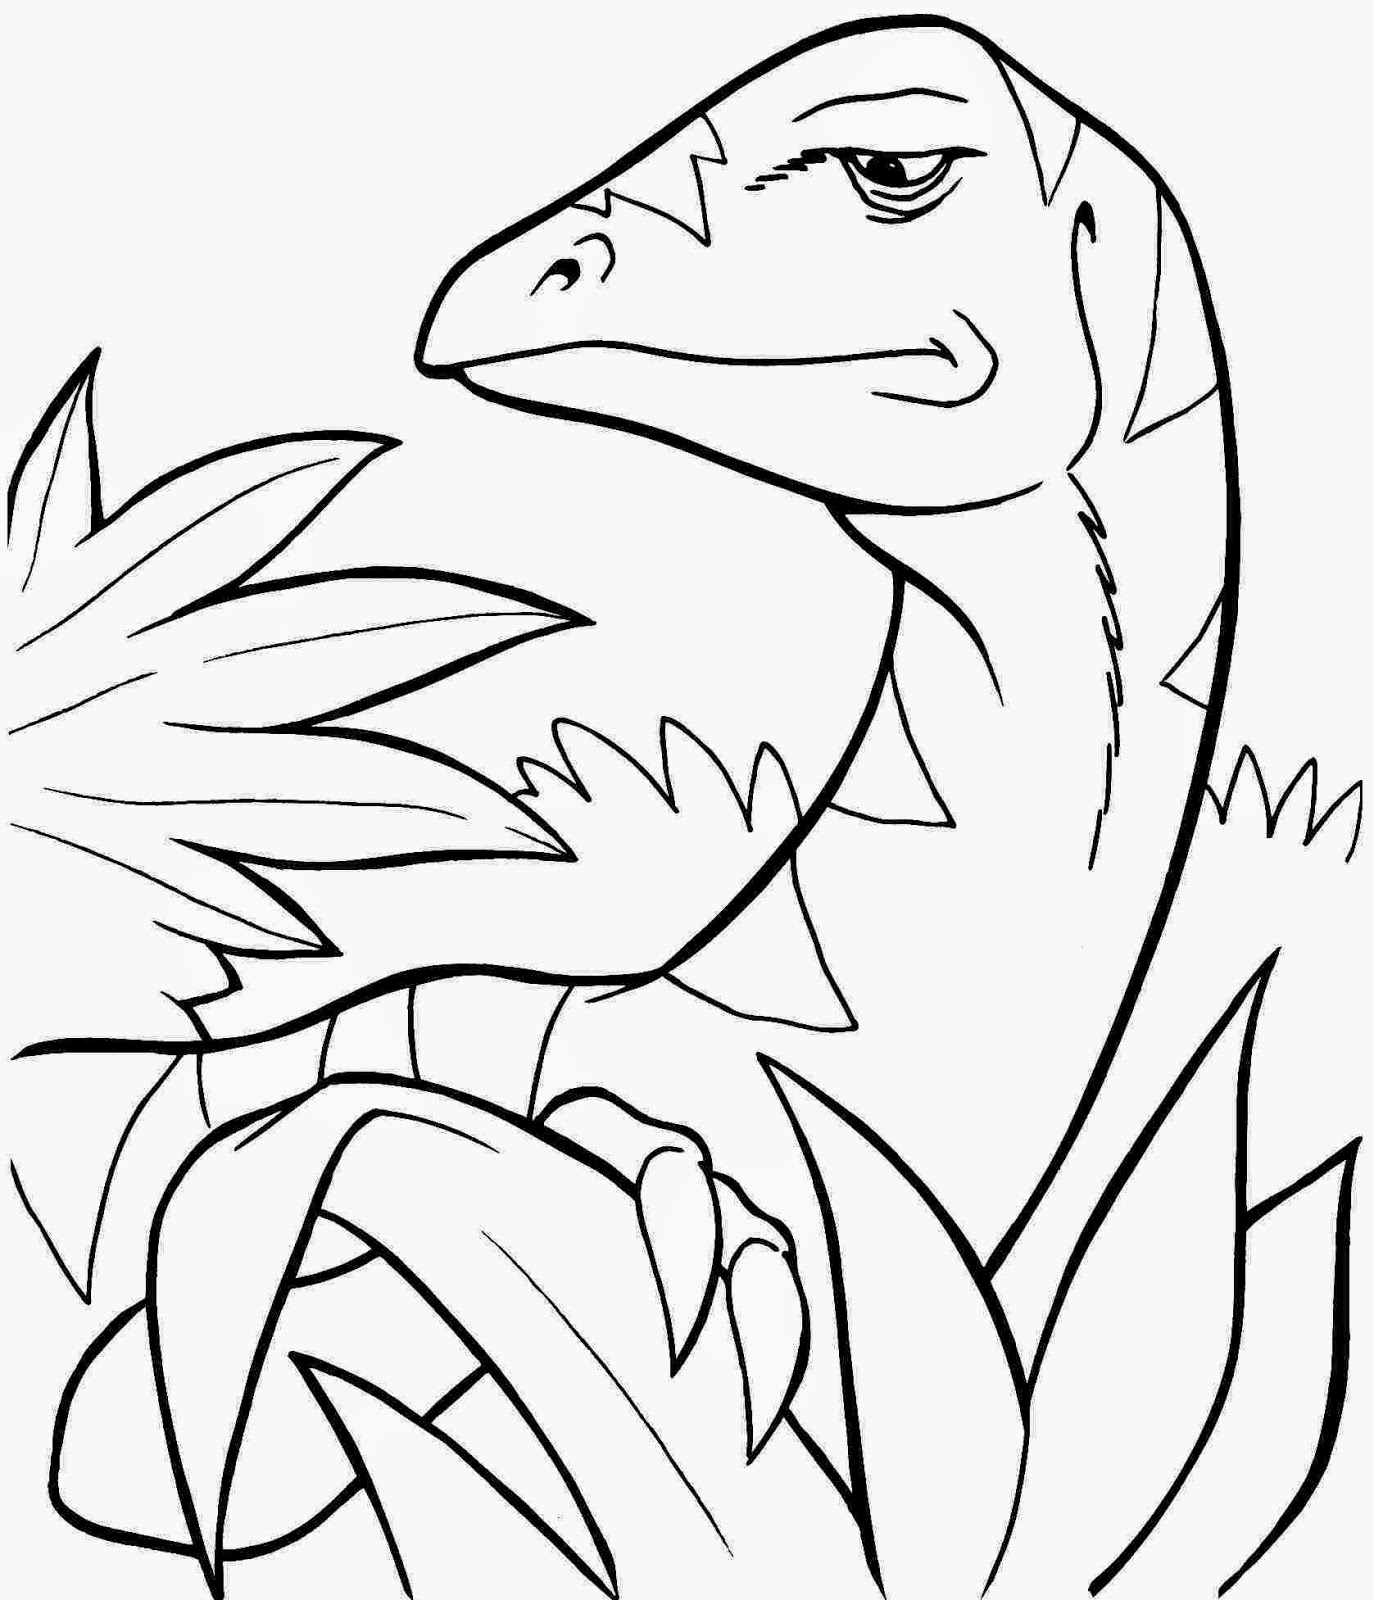 Breathtaking image in free printable dinosaur coloring pages